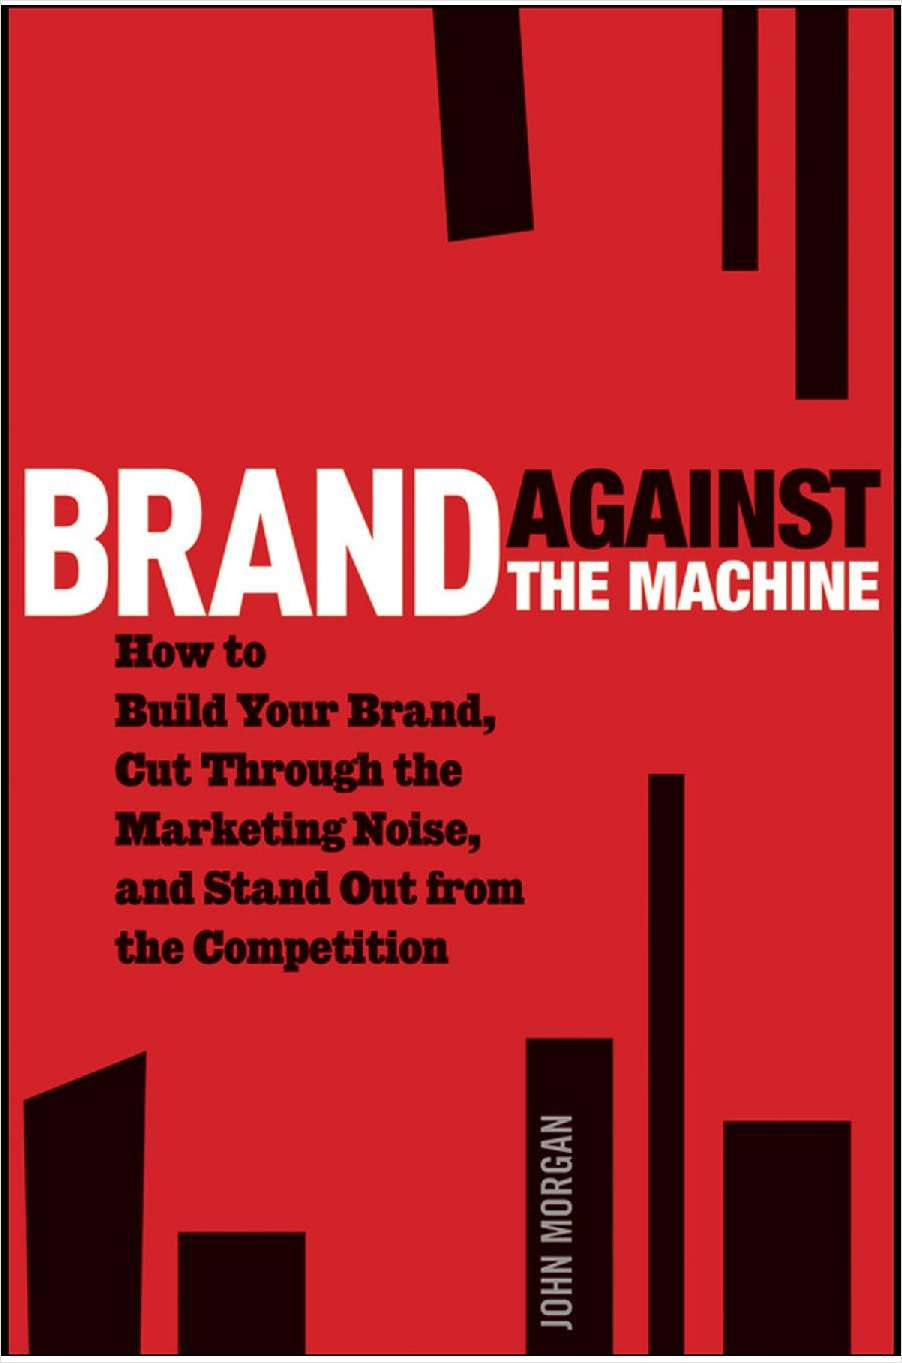 Brand Against the Machine: How to Build Your Brand, Cut Through the Marketing Noise, and Stand Out from the Competition--Free Sample Chapter